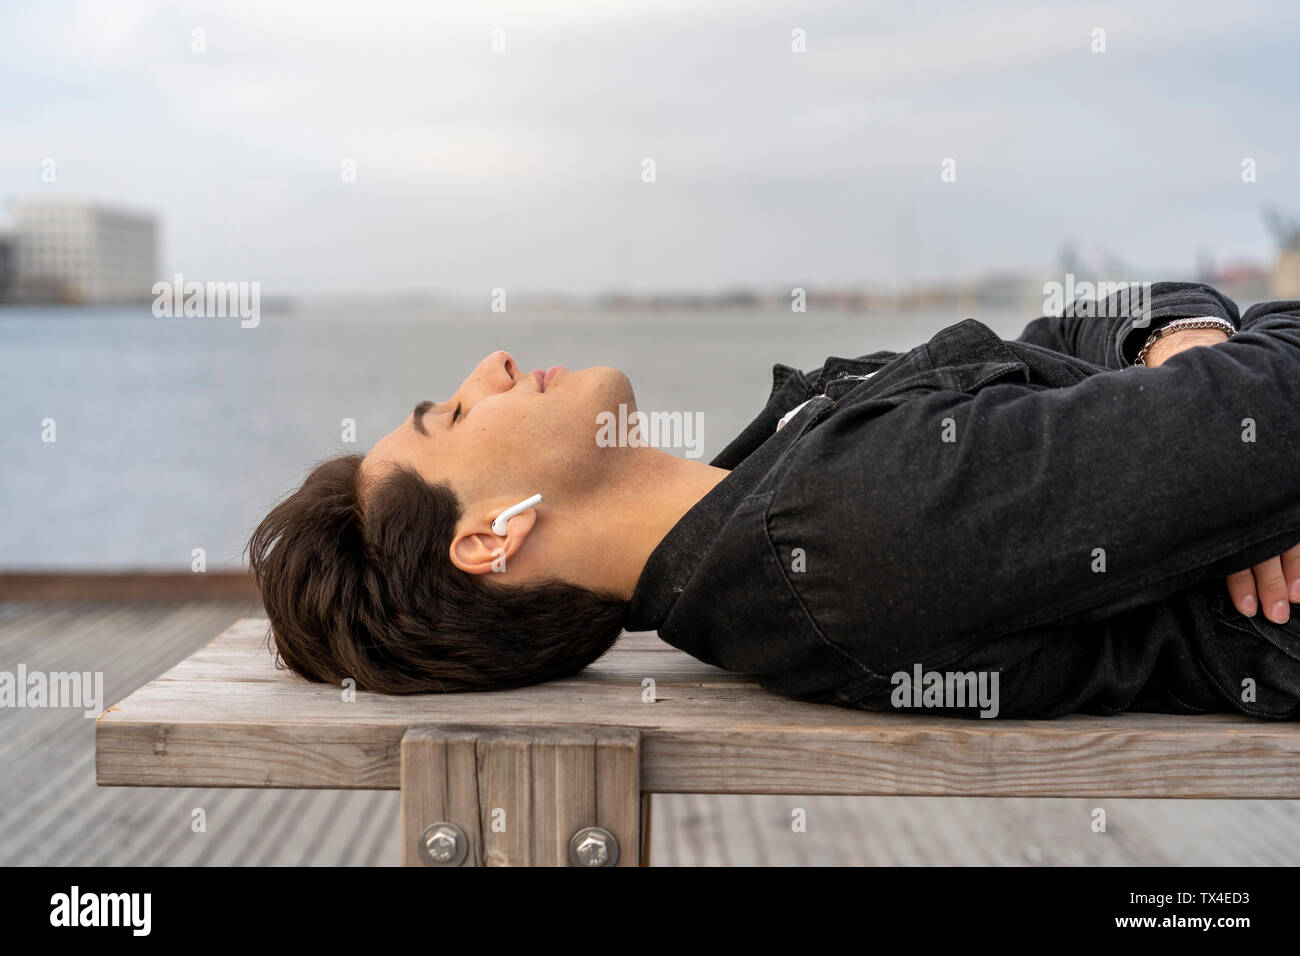 Denmark, Copenhagen, young man with earbuds lying on a bench at the waterfront - Stock Image